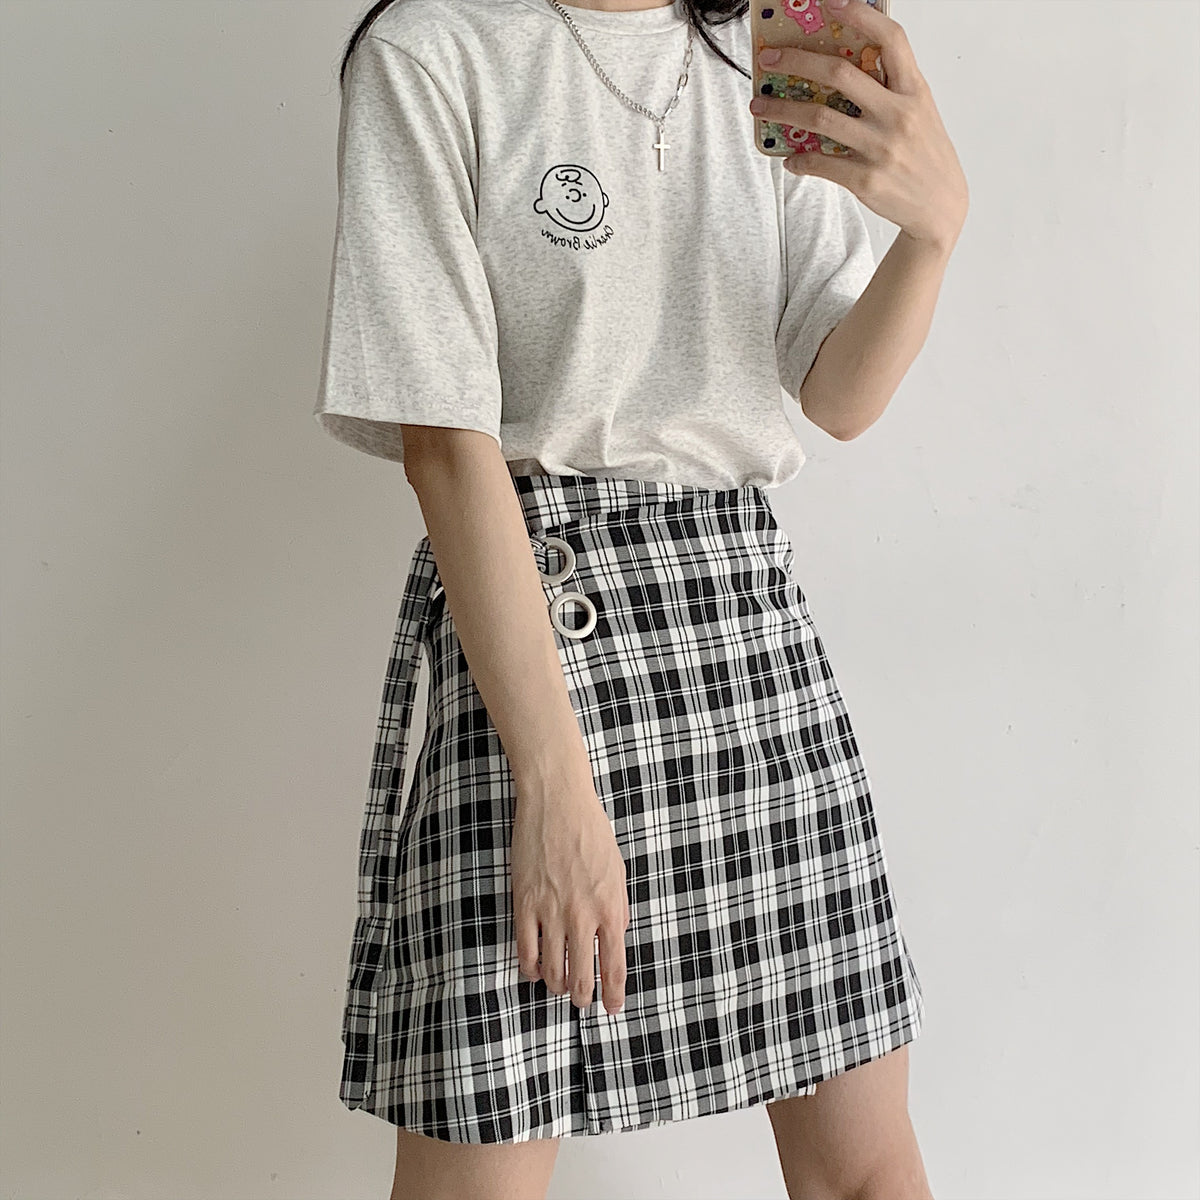 Black and white plaid button skirt  YC21558